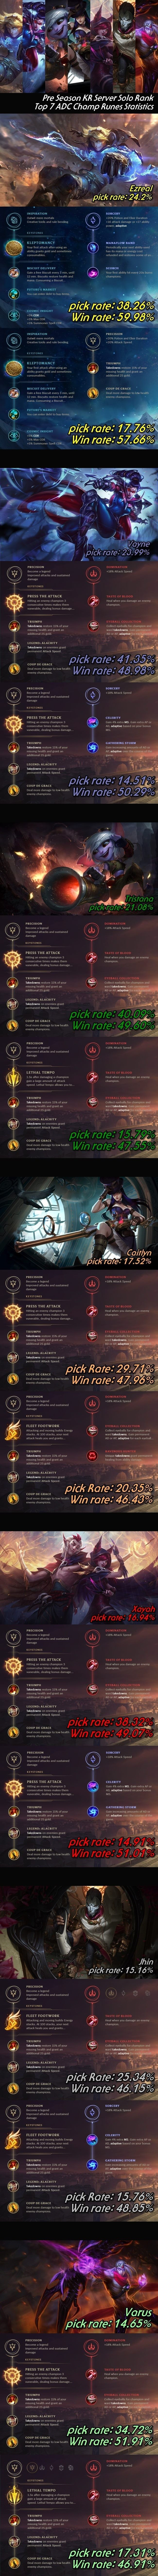 What runes are most Used? #1 listed 'ADC' Kleptomancy: KR SoloQ https://www.invenglobal.com/articles/3505/what-runes-are-most-used-1-listed-adc-kleptomancy-kr-soloq #games #LeagueOfLegends #esports #lol #riot #Worlds #gaming